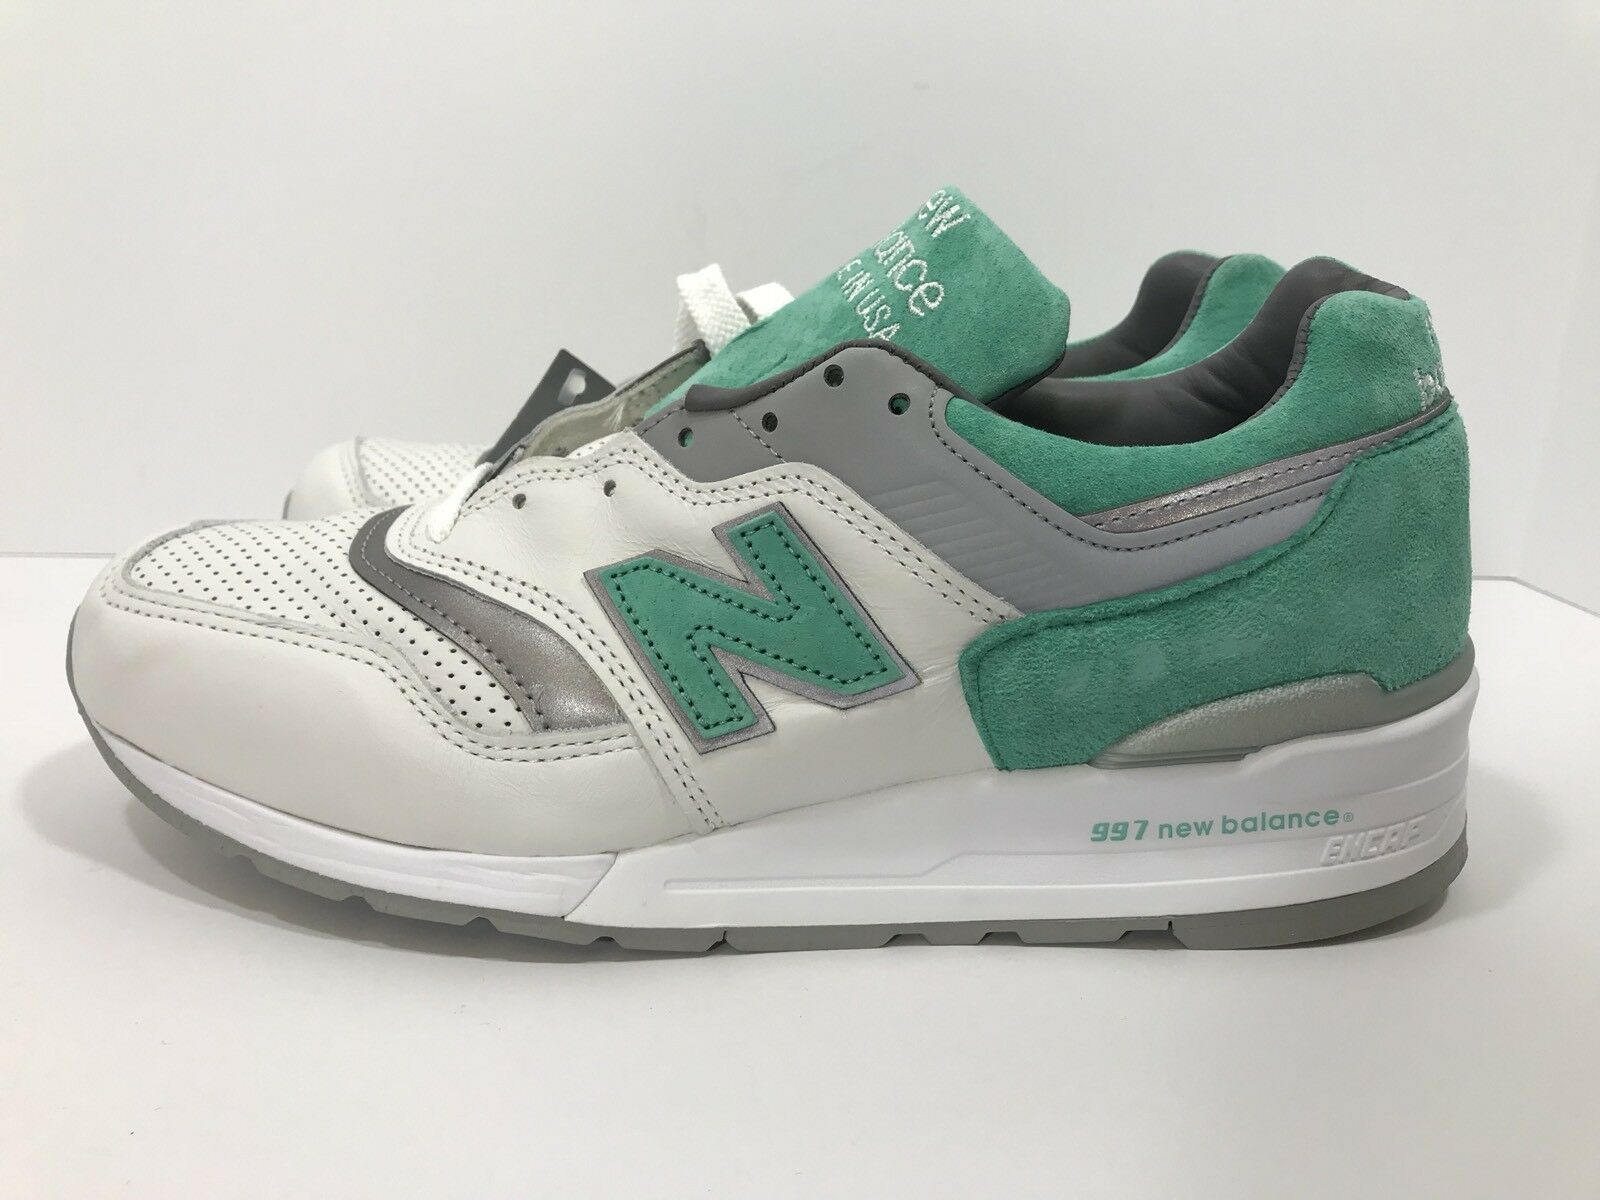 New Balance 997 Made In USA Men's Size 9 White Mint Grn Kith Ronnie Fieg M997CMA